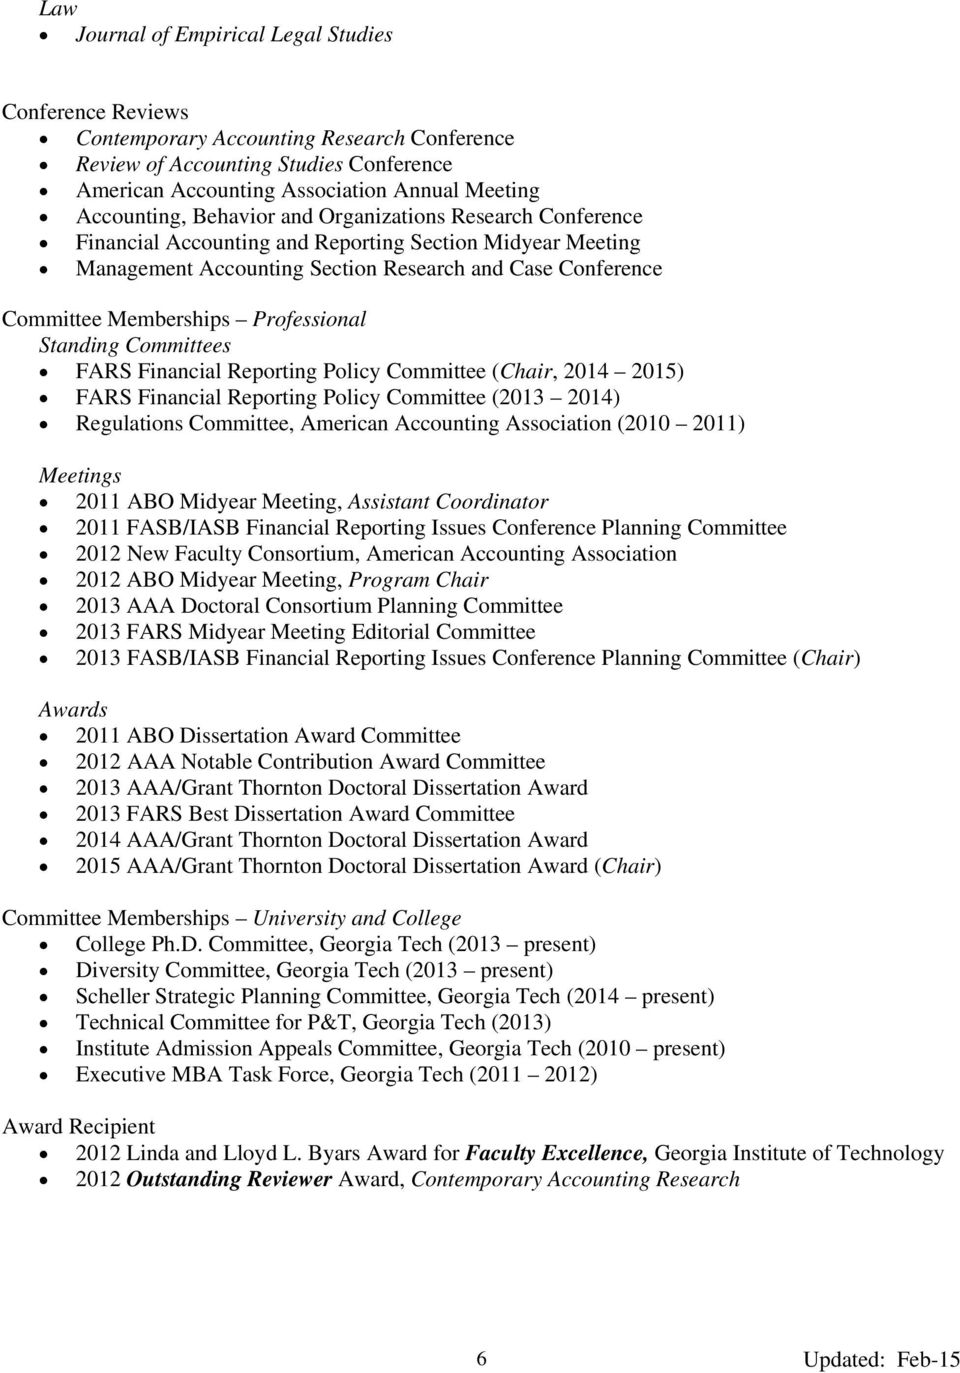 Professional Standing Committees FARS Financial Reporting Policy Committee (Chair, 2014 2015) FARS Financial Reporting Policy Committee (2013 2014) Regulations Committee, American Accounting